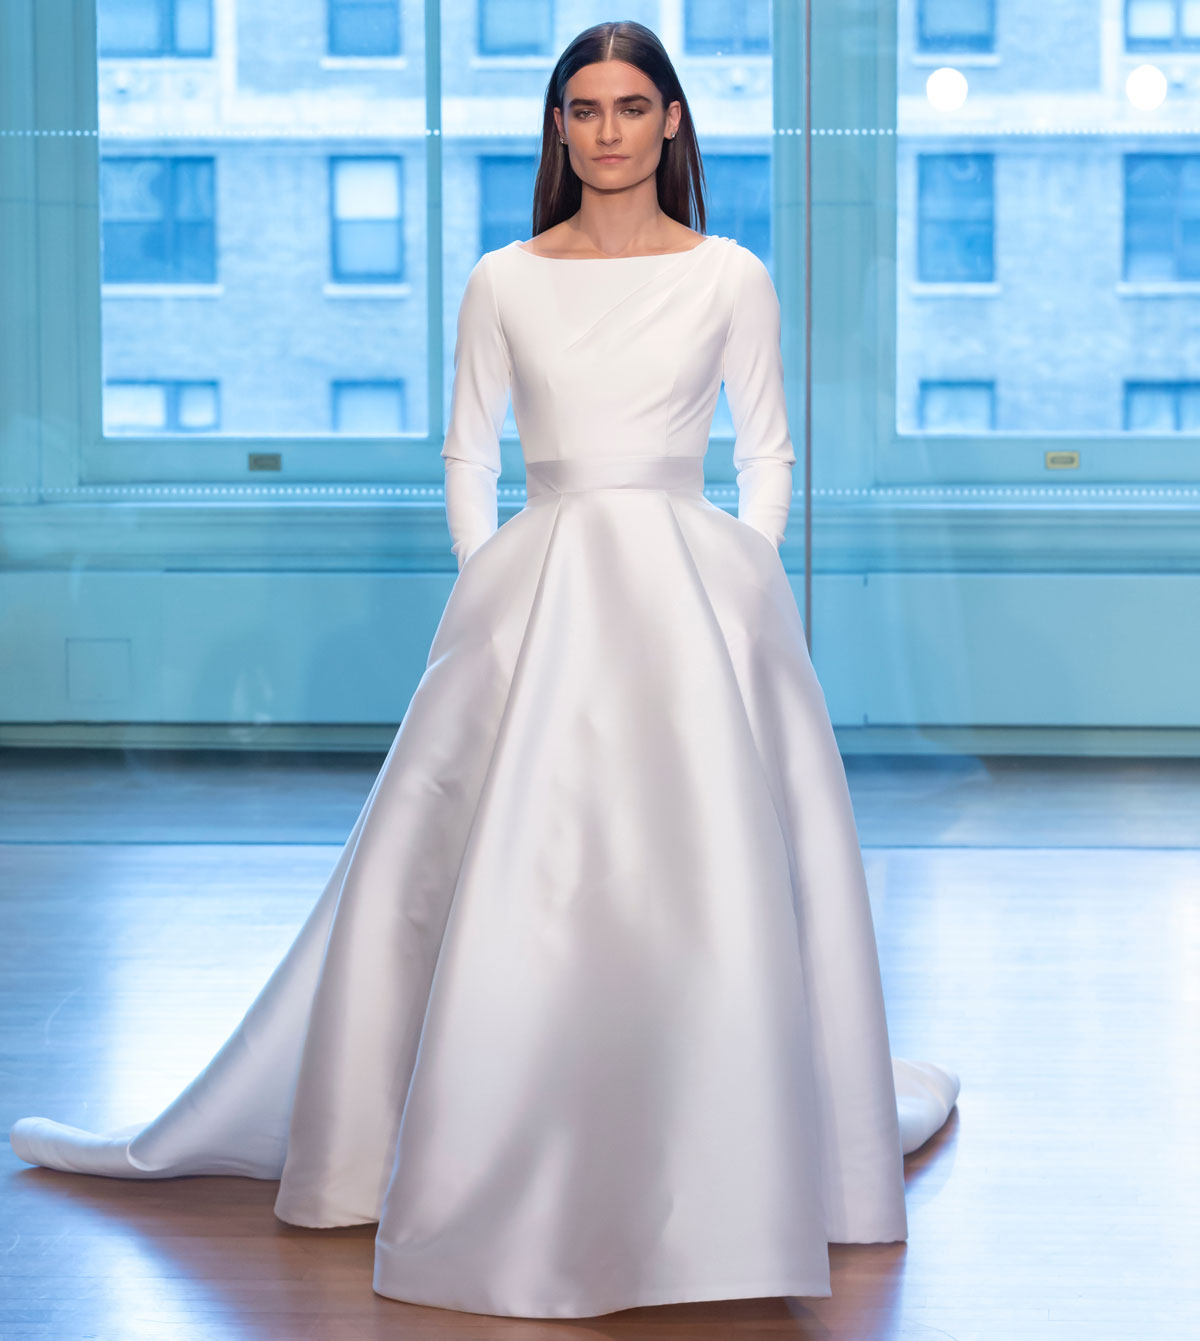 Justin-alexander-bridal-spring-2019-collection01